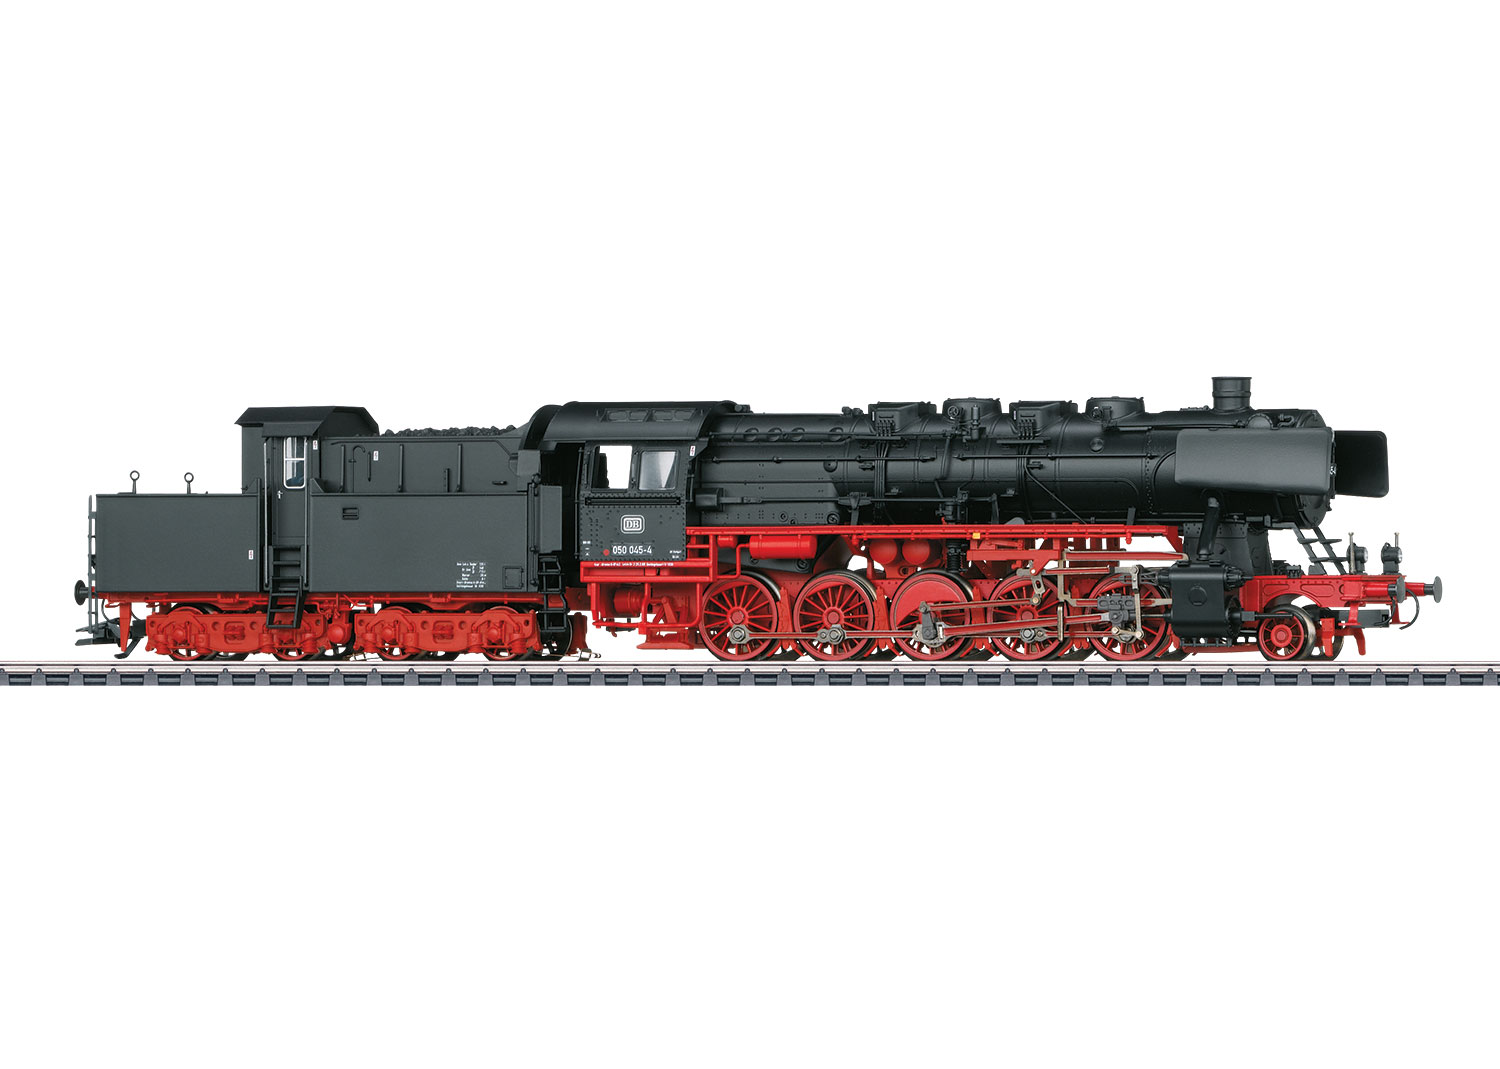 Class 050 Steam Freight Locomotive with a Cabin Tender